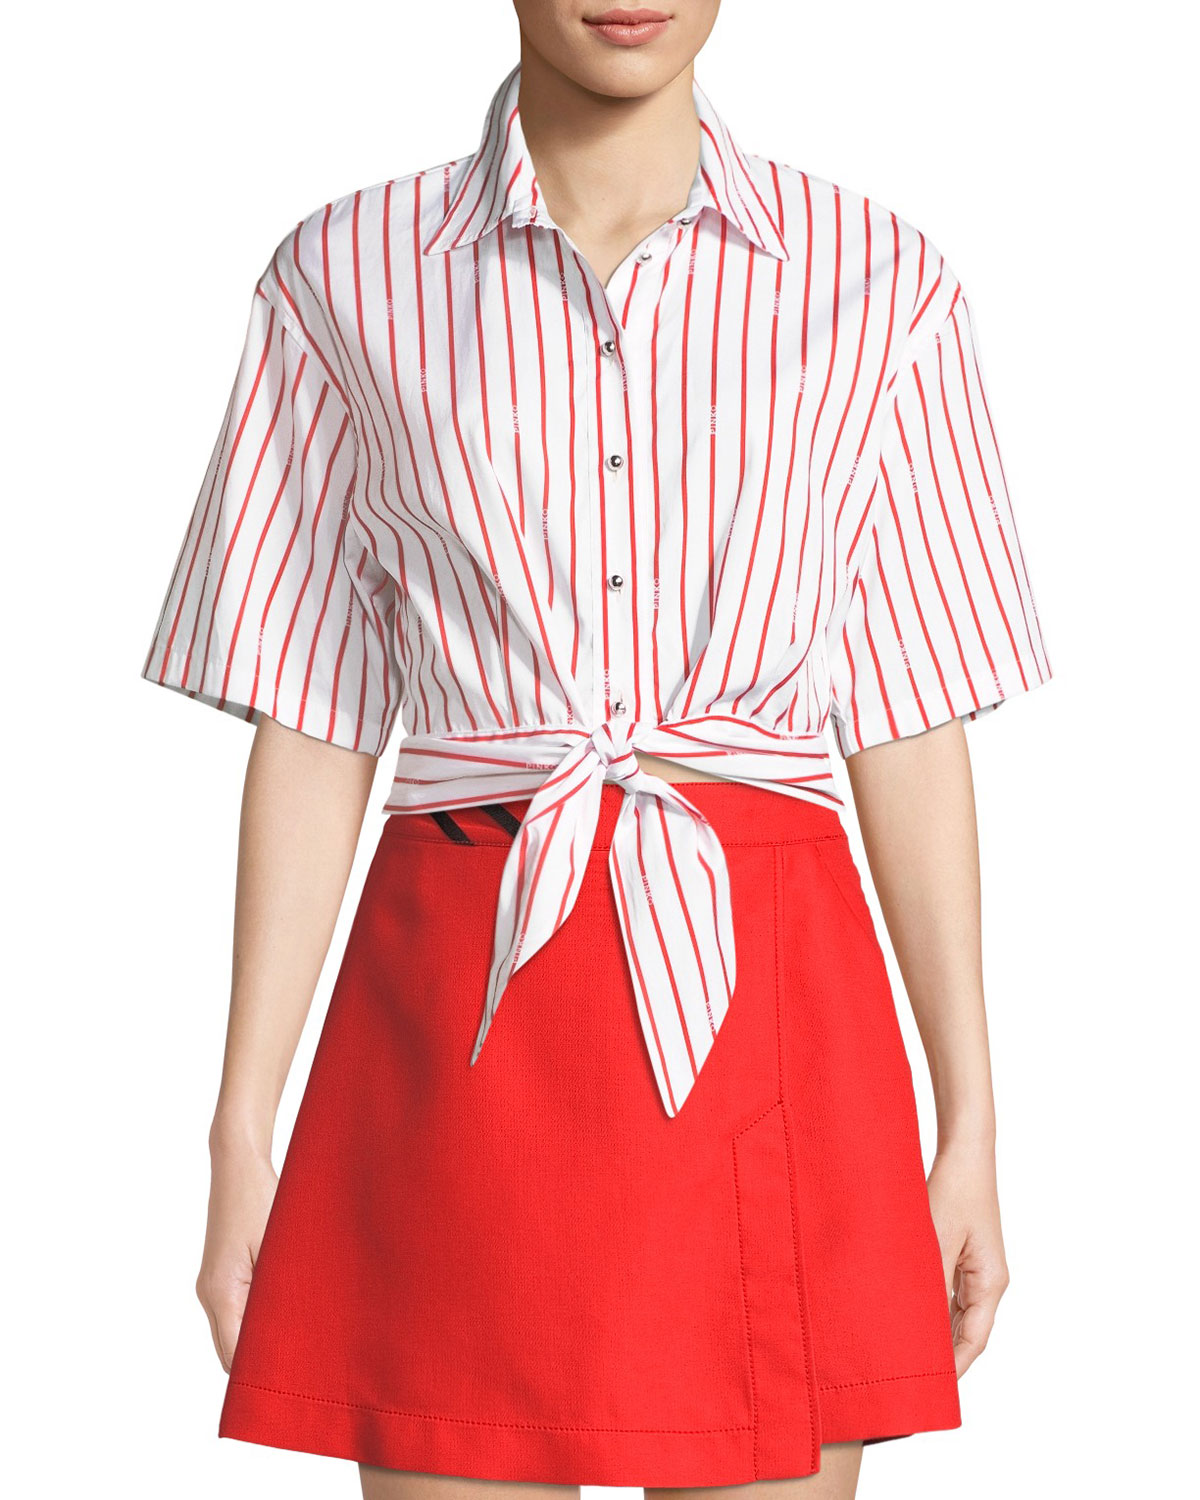 PINKO Striped Tie-Front Cropped Button-Down Top in White/Red